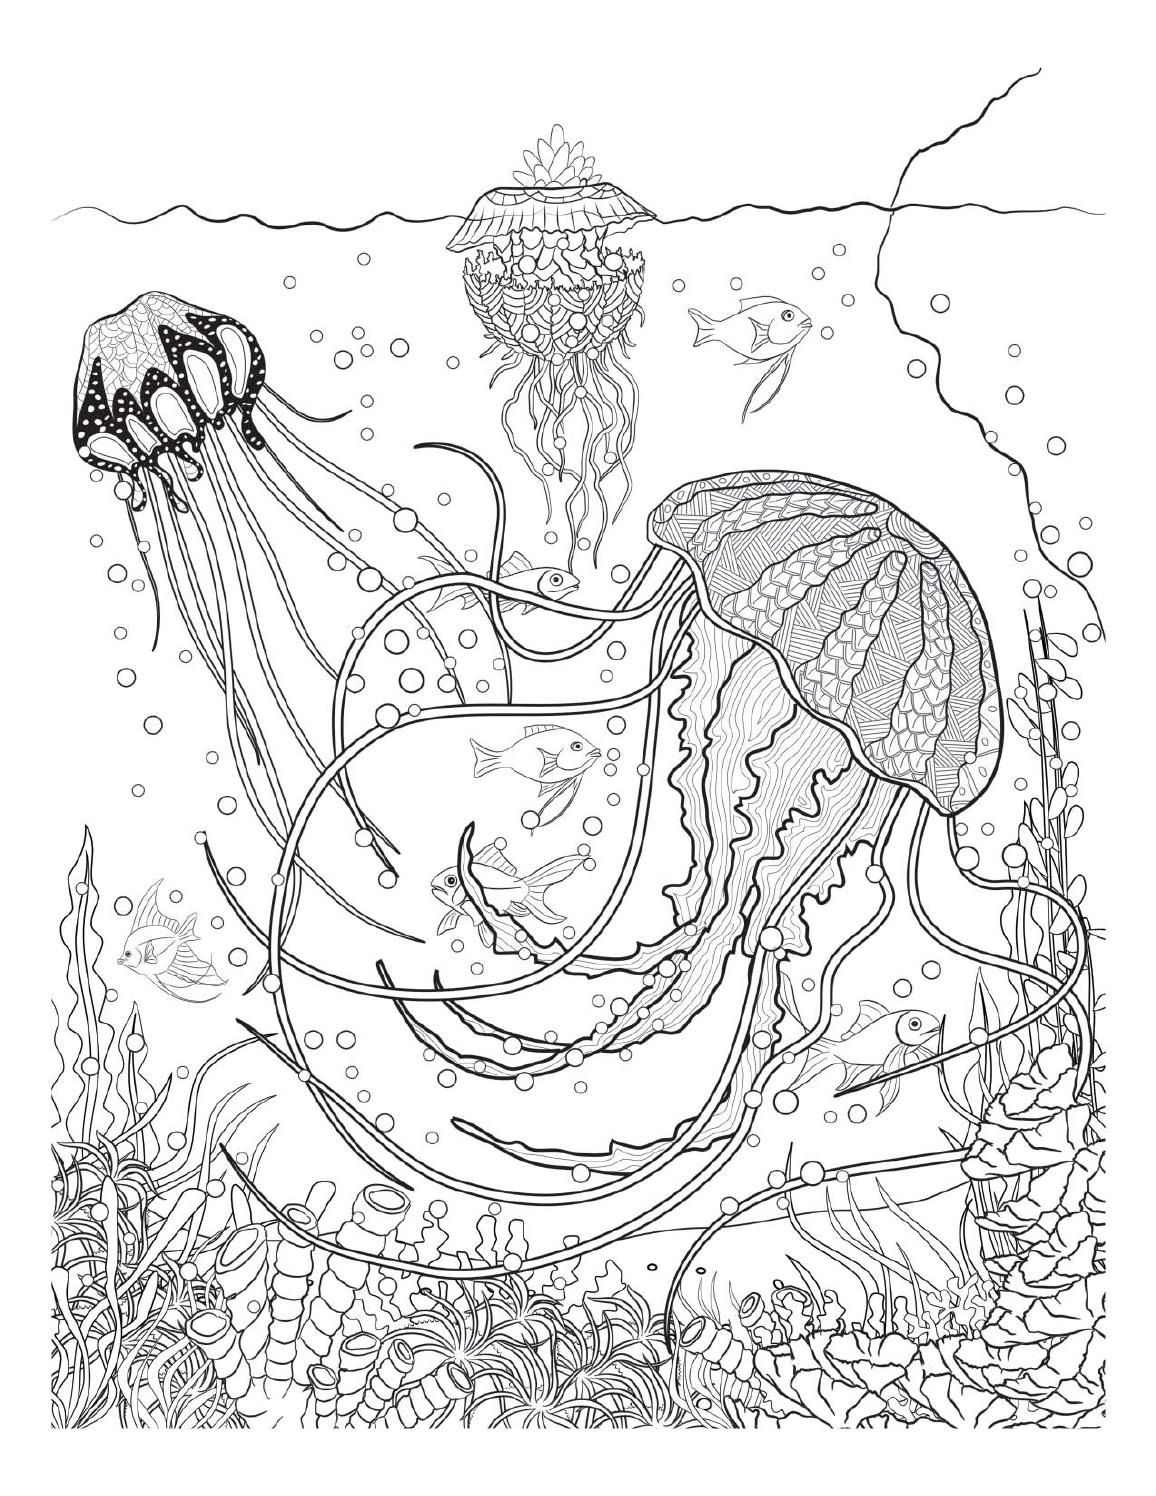 Oceana Animal Coloring Pages Colorful Drawings Adult Coloring